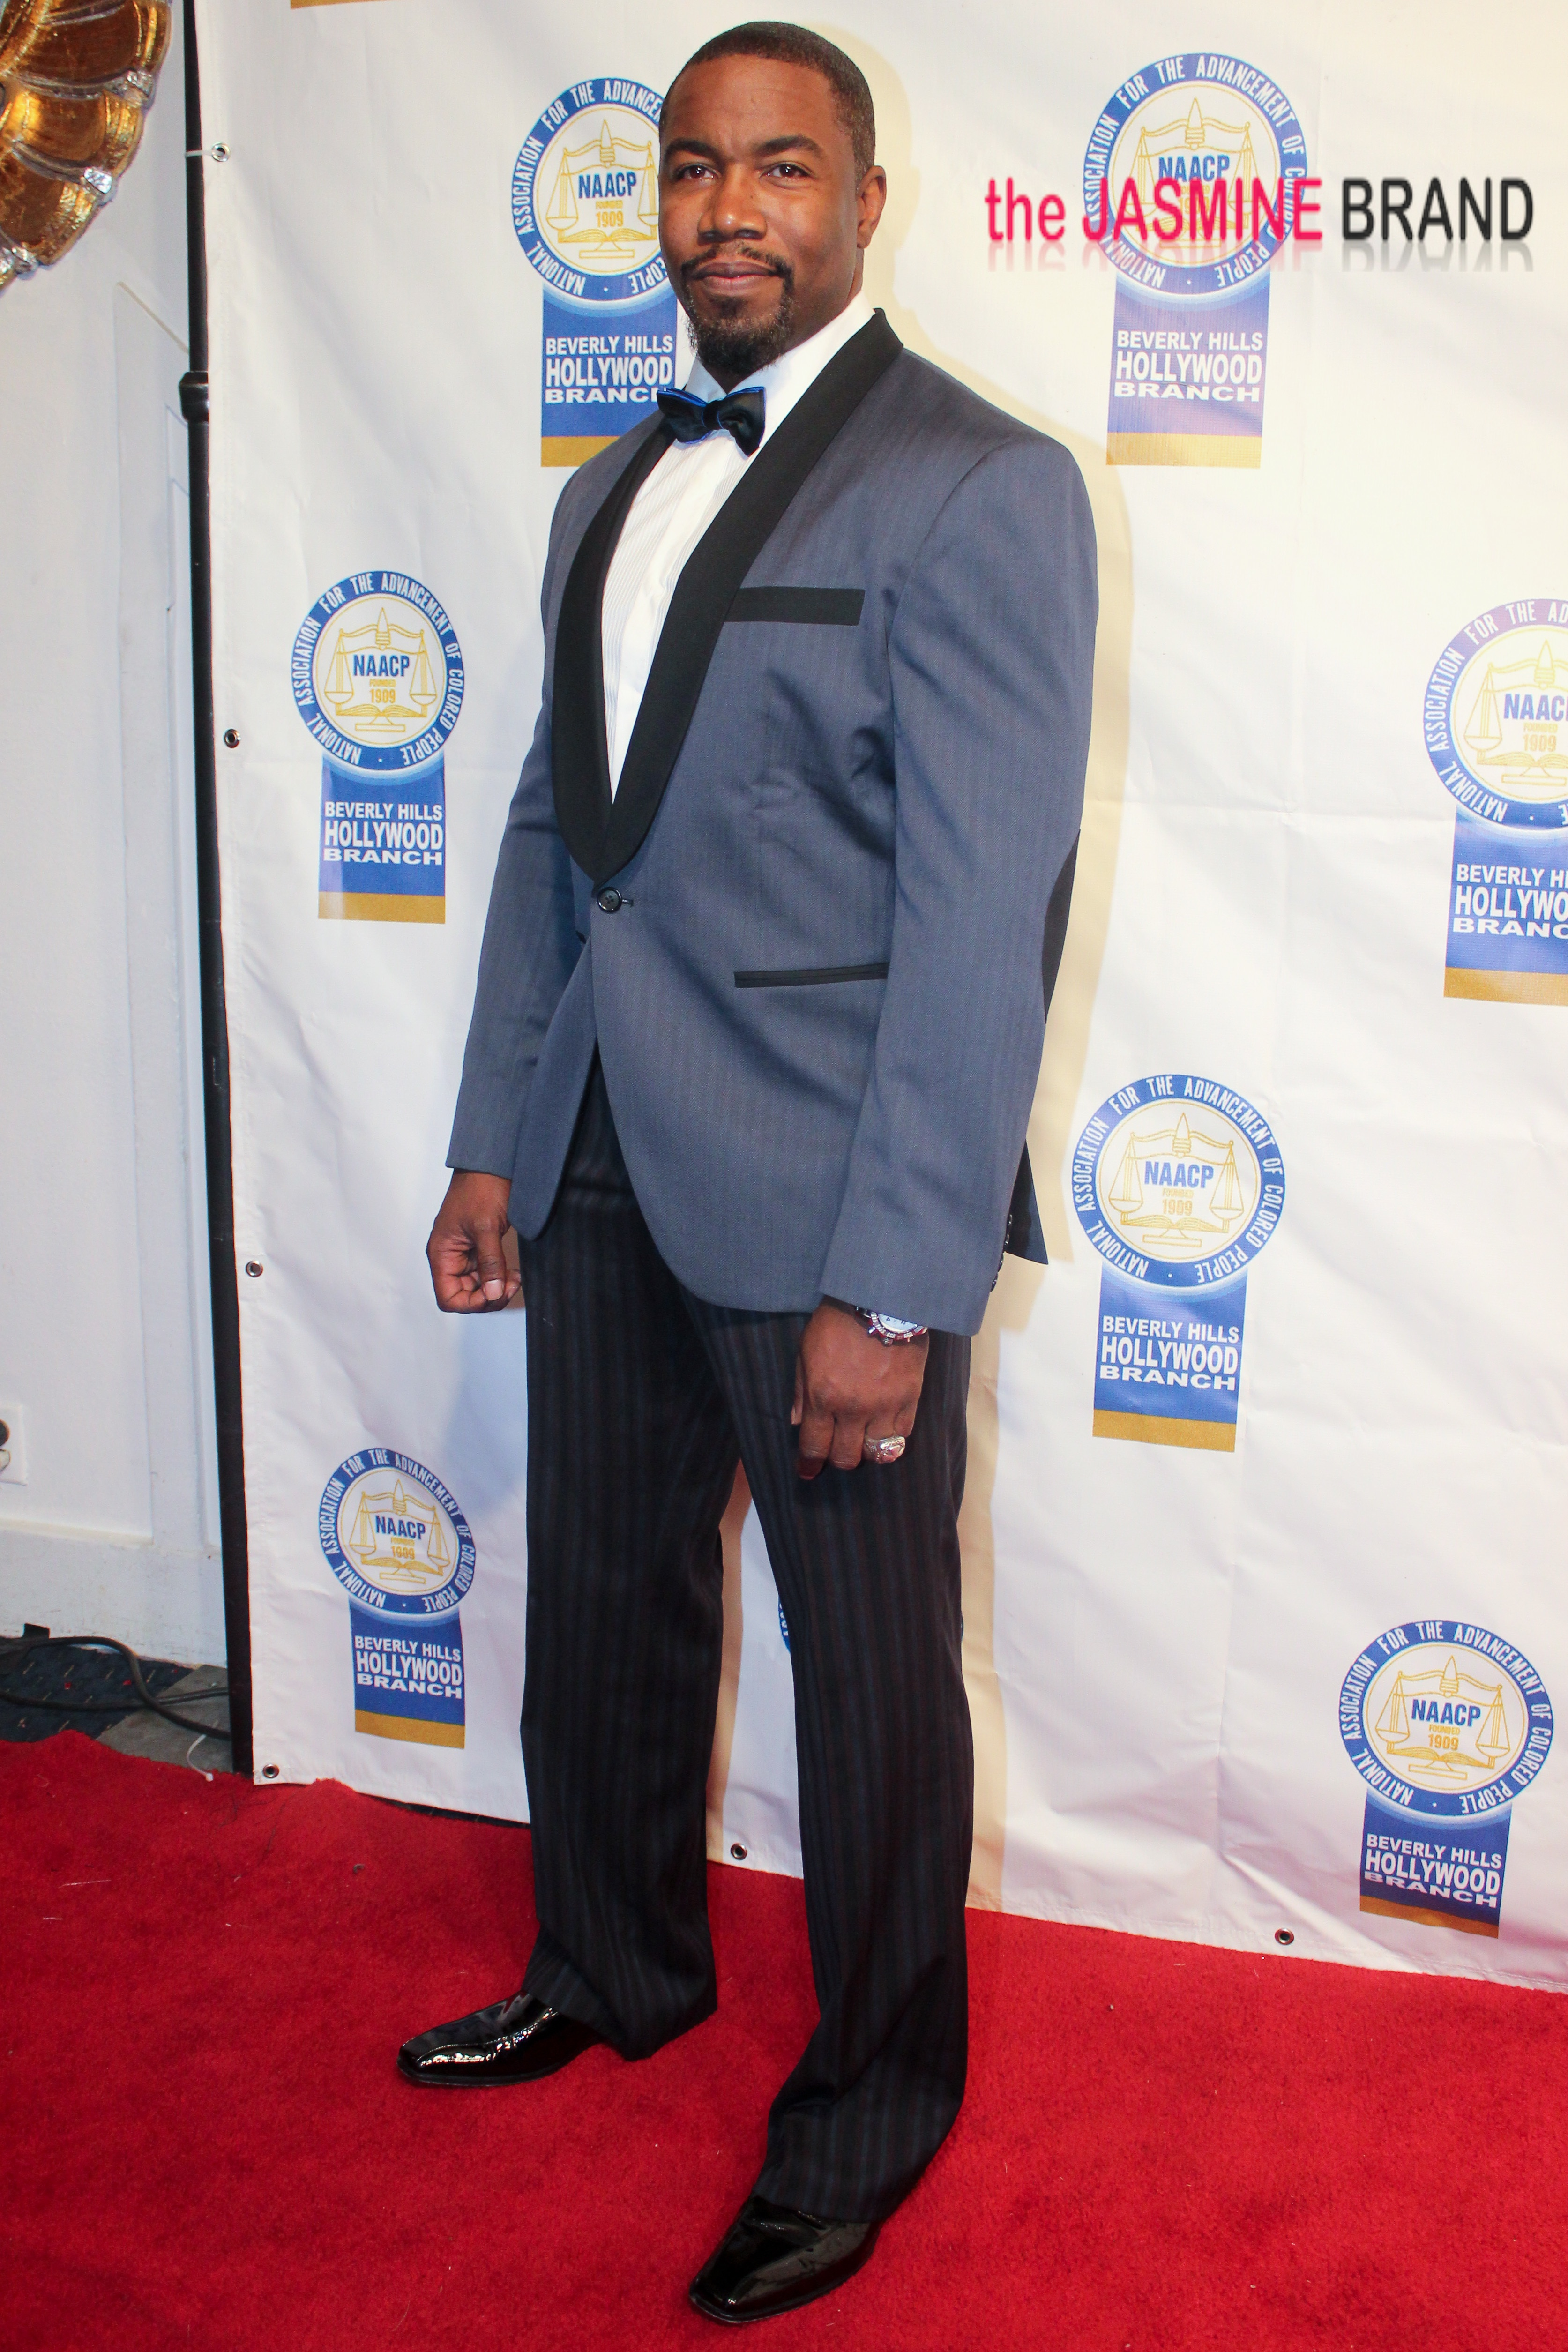 michael jai white-naacp theater awards 2013-the jasmine brand